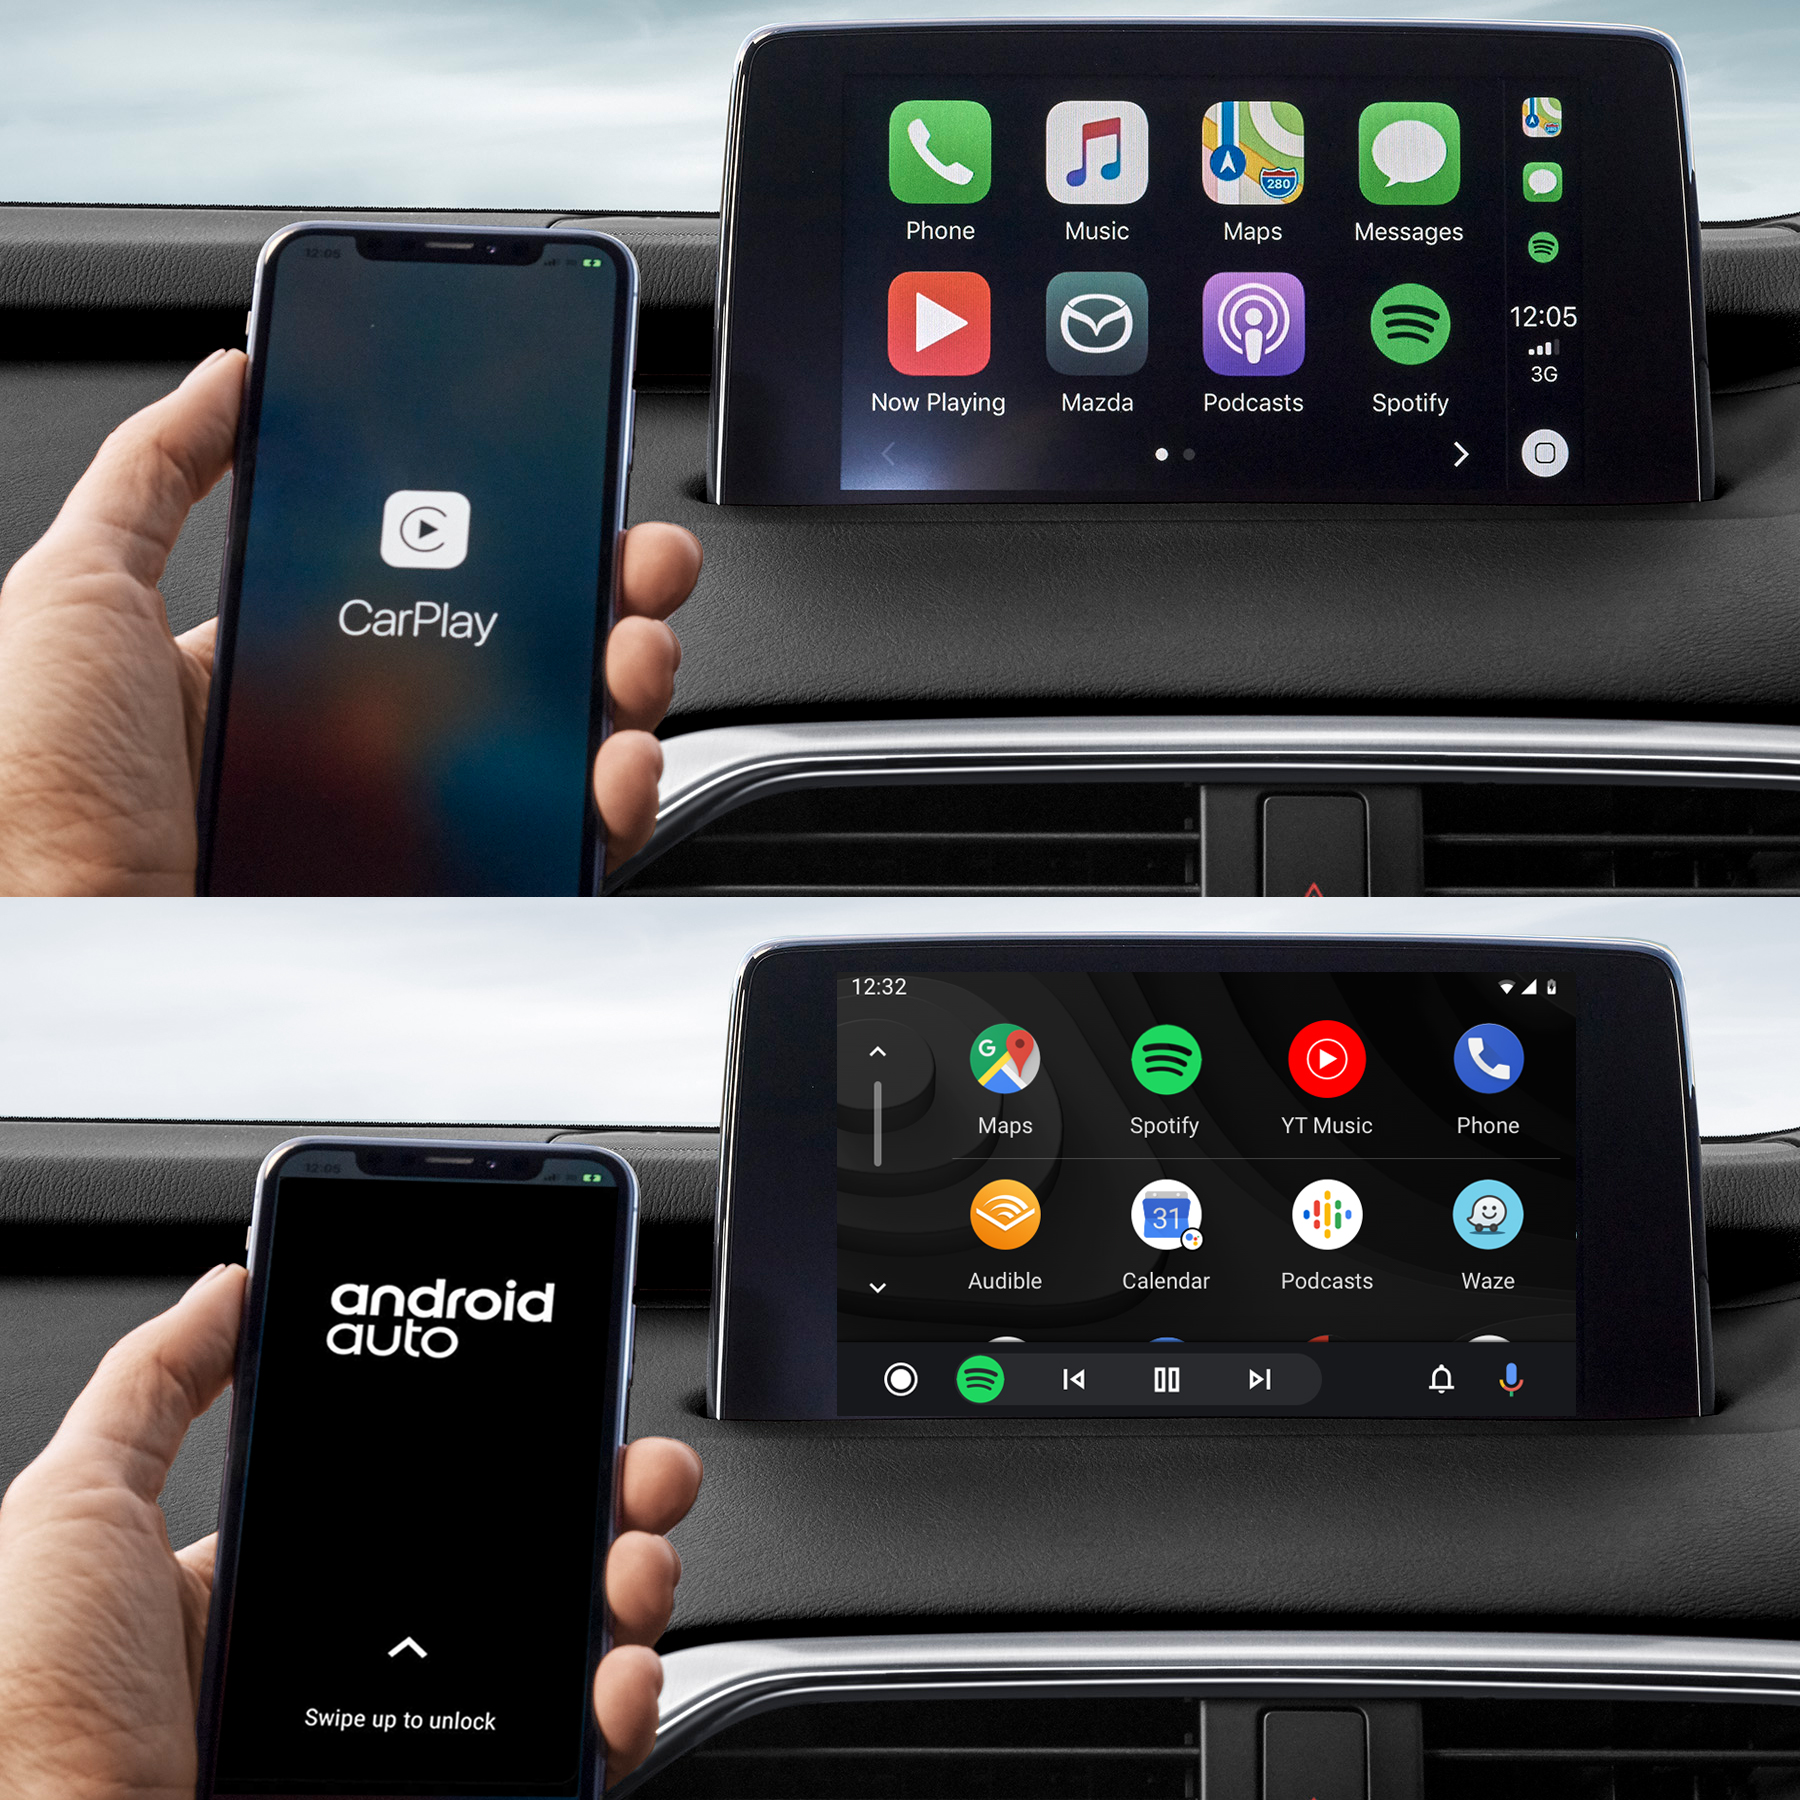 Details about New Genuine Mazda 2 3 6 CX3 CX5 CX8 CX9 Apple Carplay Android  Auto Retrofit Kit